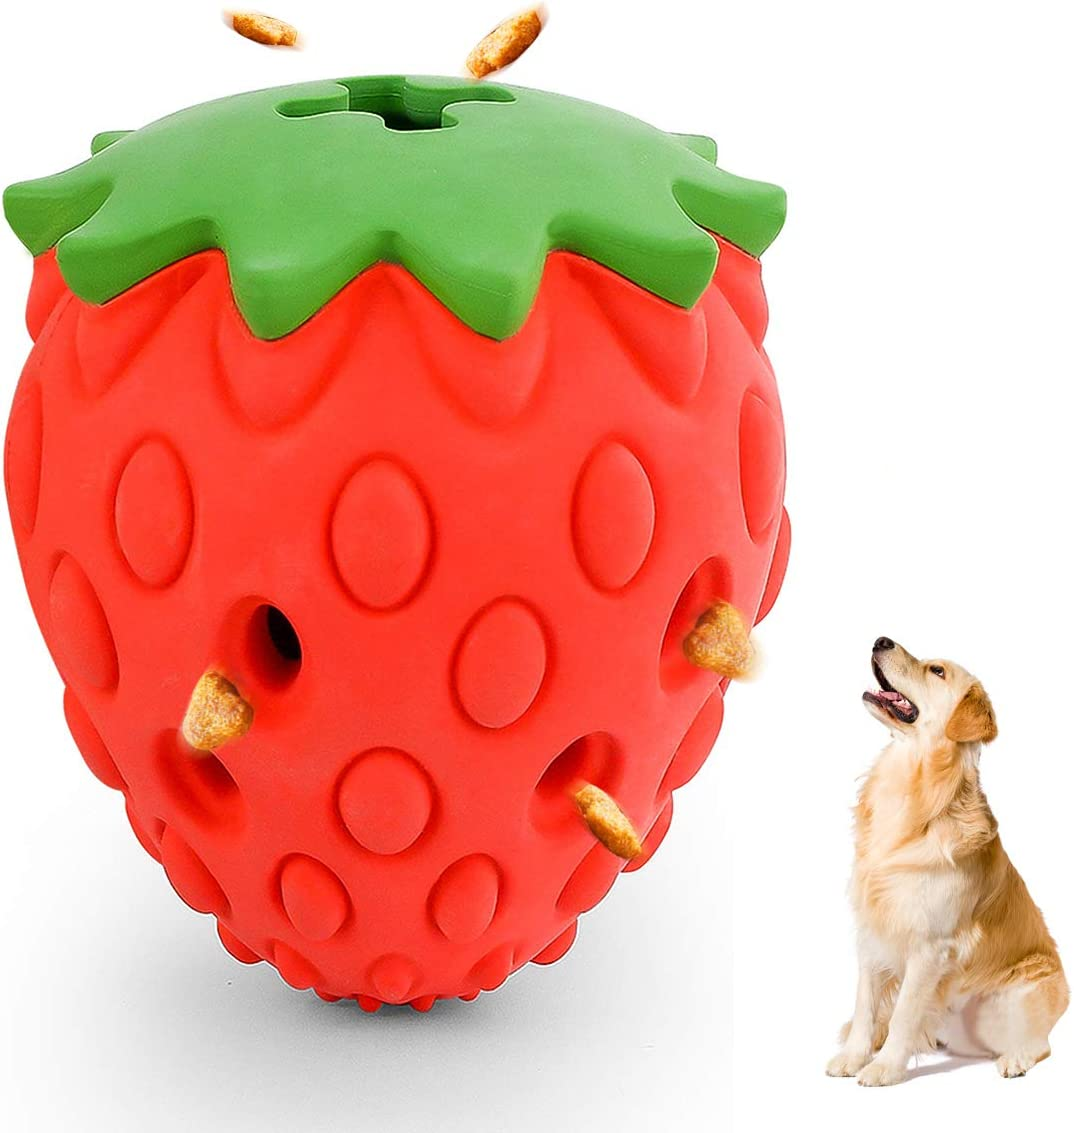 Dog Chew Toys for Aggressive Chewers Medium Breed, Dog Toothbrush Tough Dog Dental Teeth Cleaning Chew Toy, Indestructible Dog Chew Toy for Small Large Dog Puppy